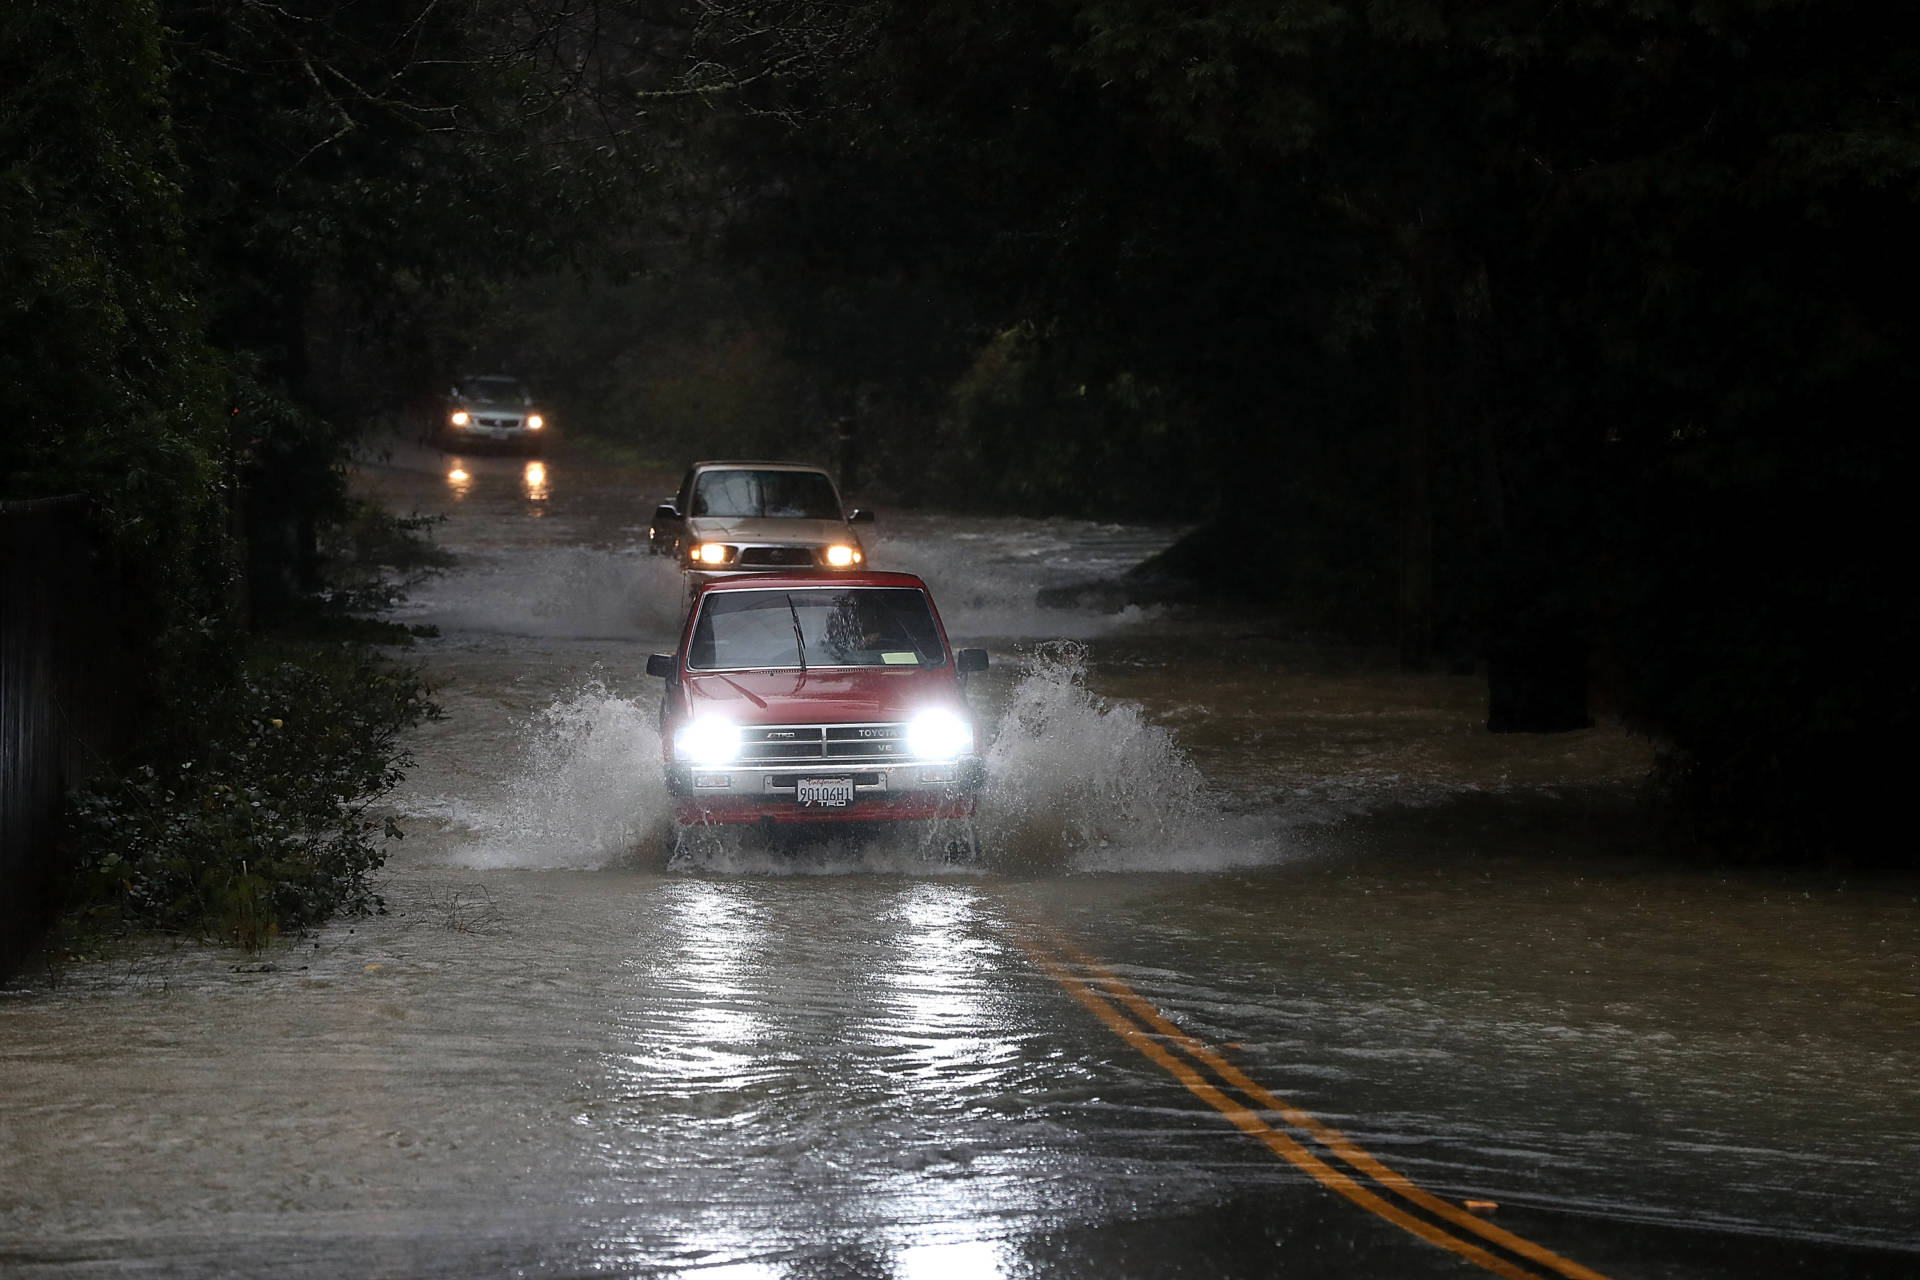 Cars drive on a flooded road in Guerneville in January 2017. The Russian River town is just downstream from Venado, a site in the northern Sonoma County hills that is one of the rainiest locations in California.  Justin Sullivan/Getty Images